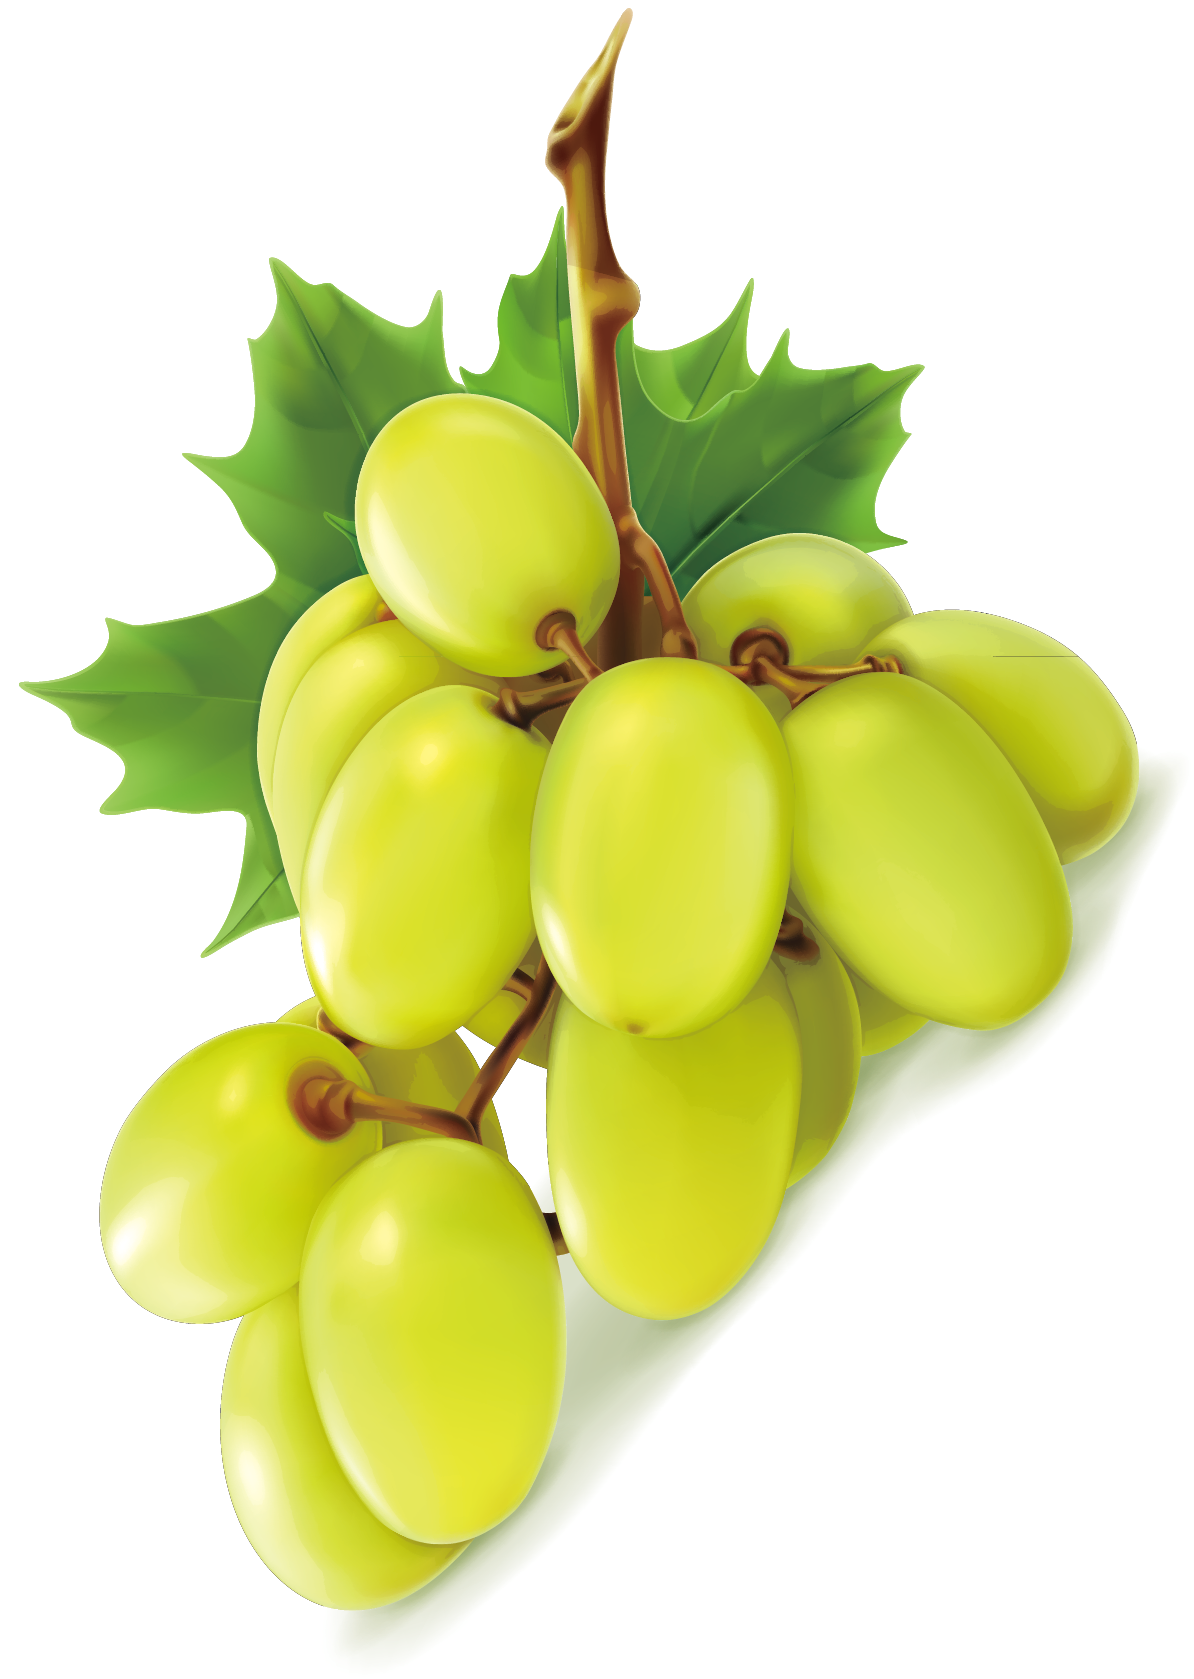 Pin By Pngsector On Grape Png Image Grape Clip Art Green